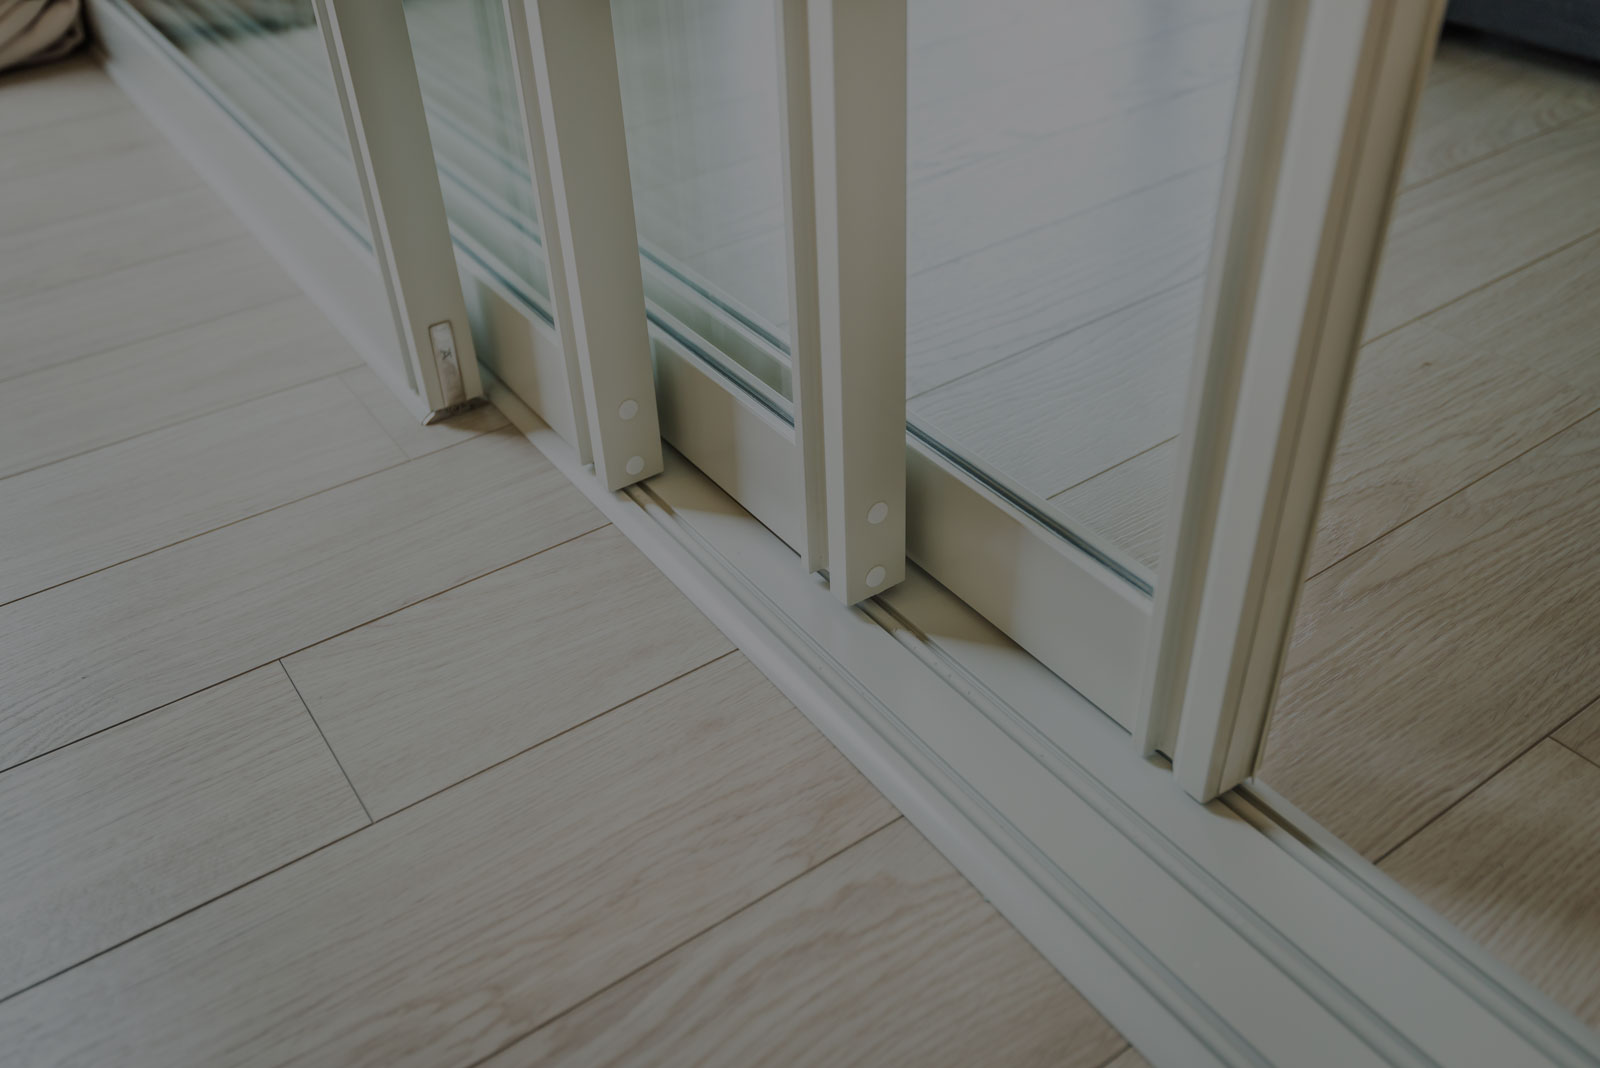 Sliding Door Roller Replacement: DIY Guide To Do It The Right Way